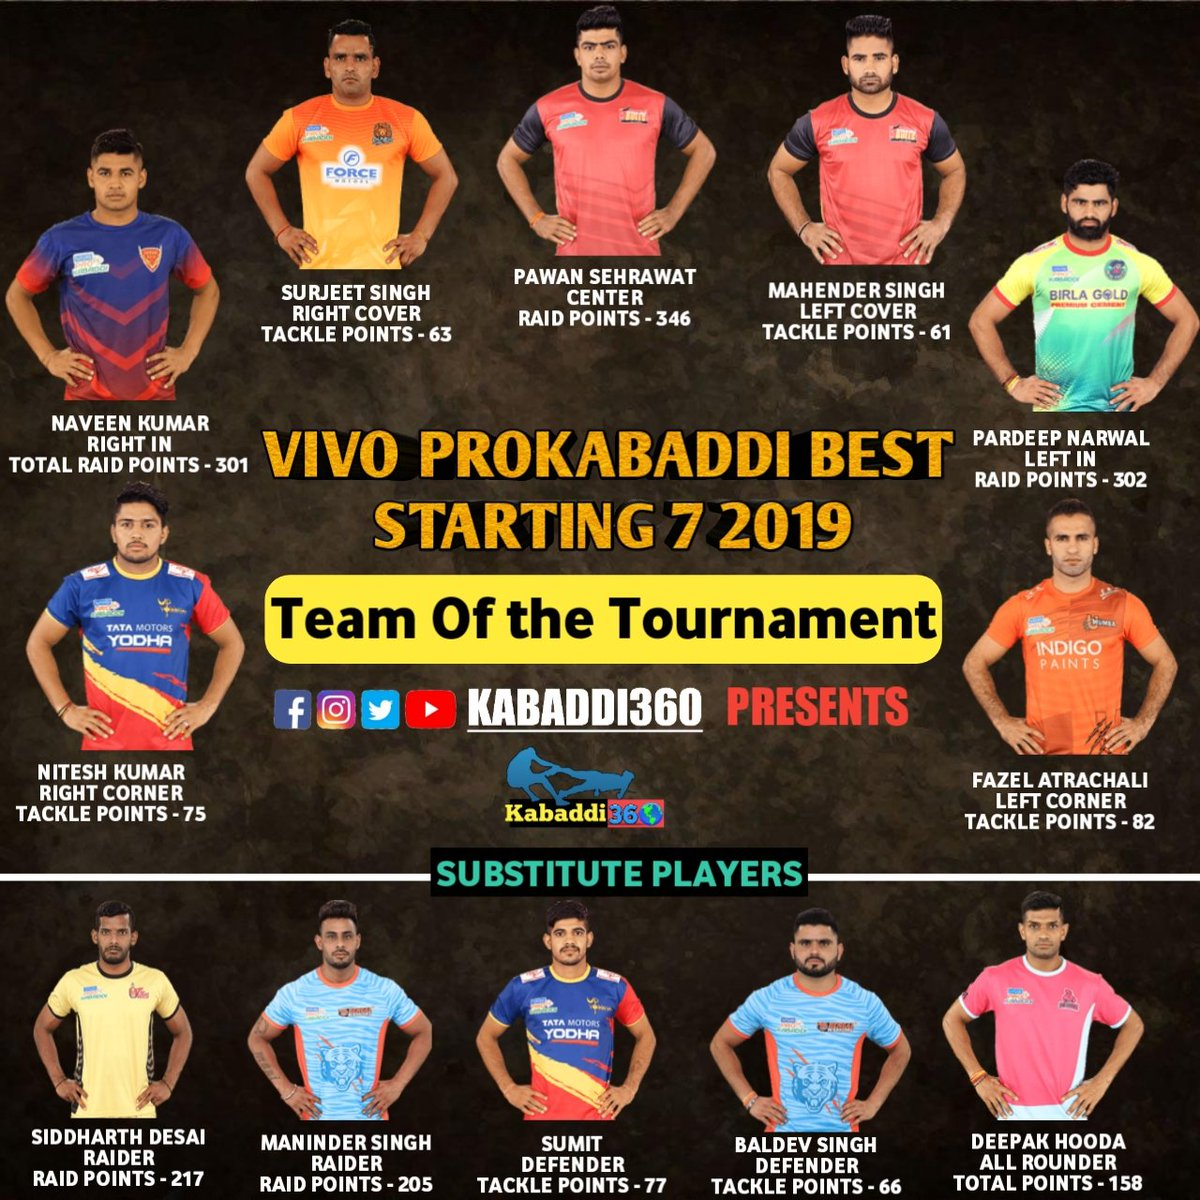 Best playing 7 of the PKL 7 on the basis of stats 😍 what would be your best team of the season 7? Comment below 👇🏻  #Starting7 #VivoProKabaddi  #PKLWithKabaddi360  #Issetoughkuchnahi